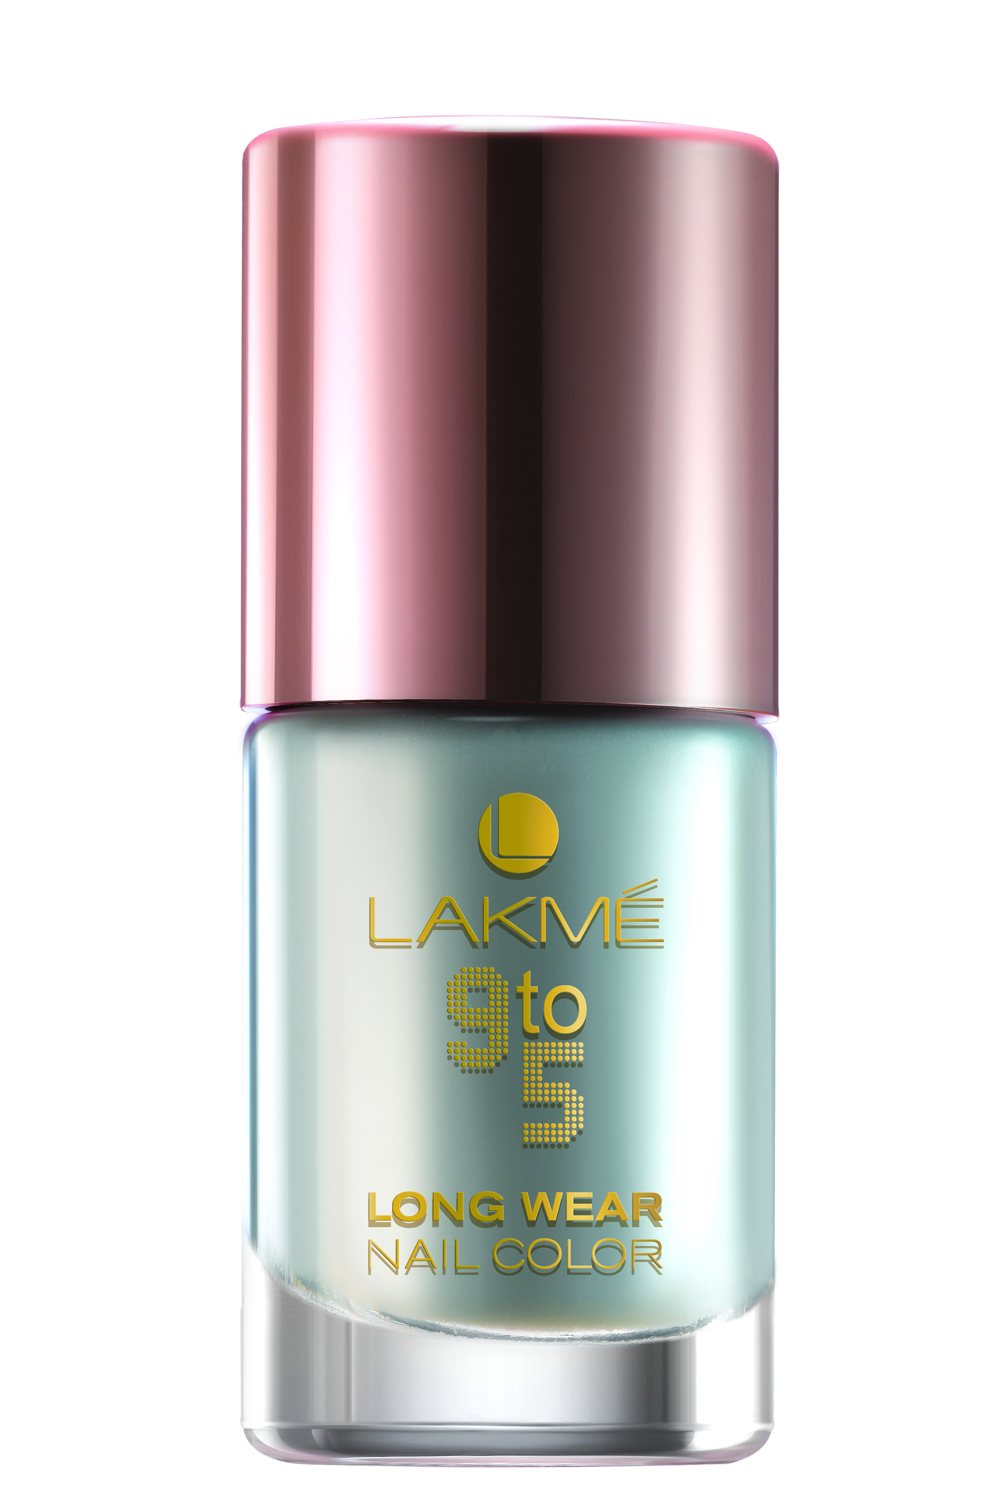 Makeup For The Working Women | Lakme 9 to 5 The Office Stylist Range